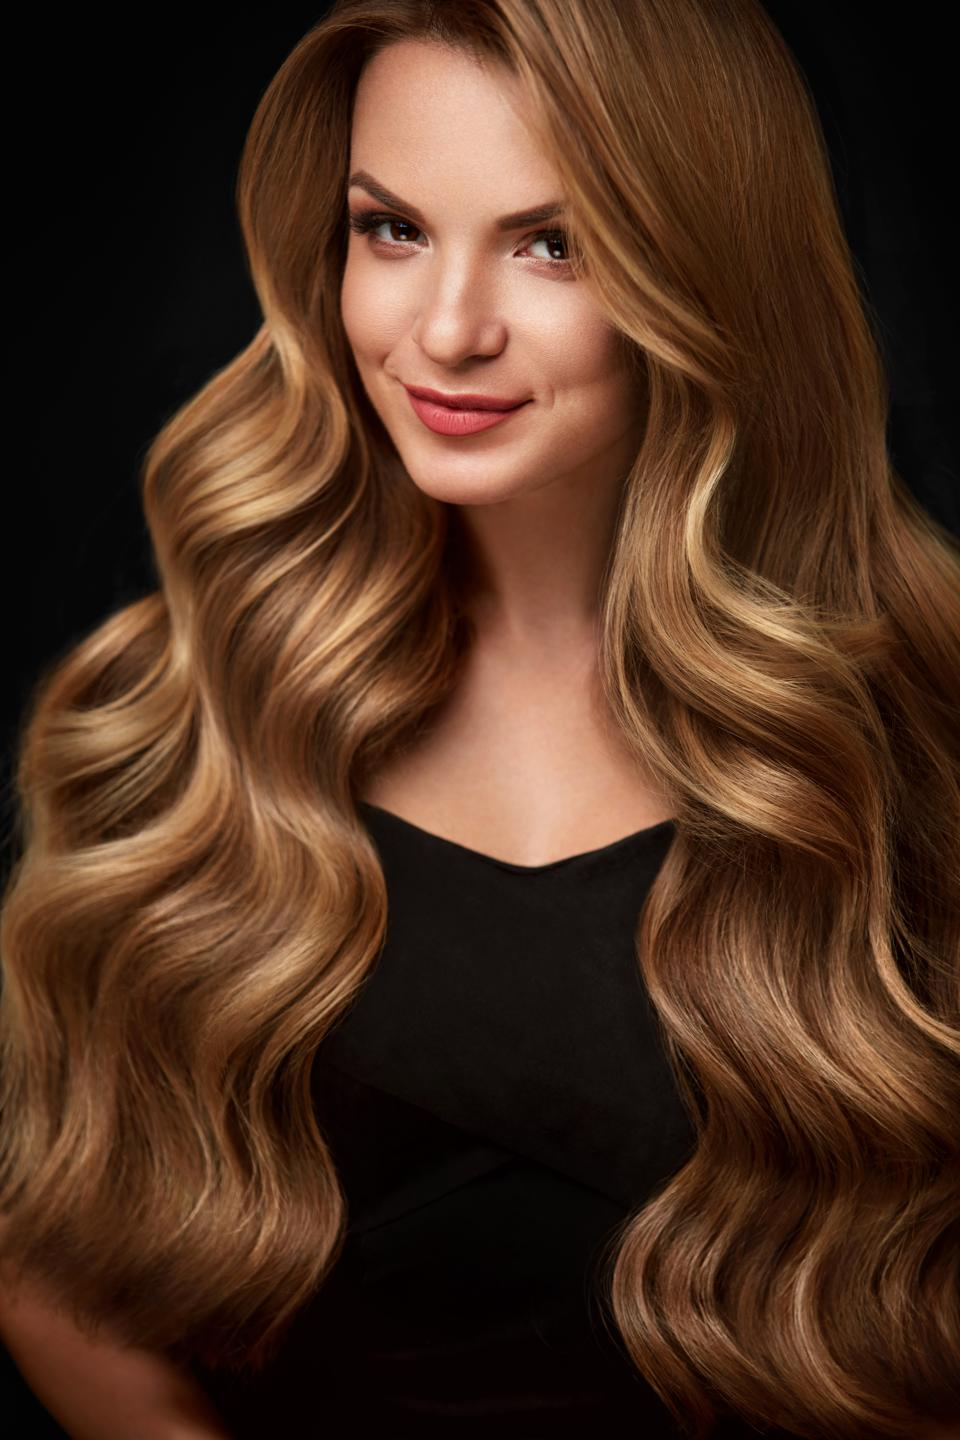 Beauty Hair. Beautiful Woman With Curly Long Blond Hair